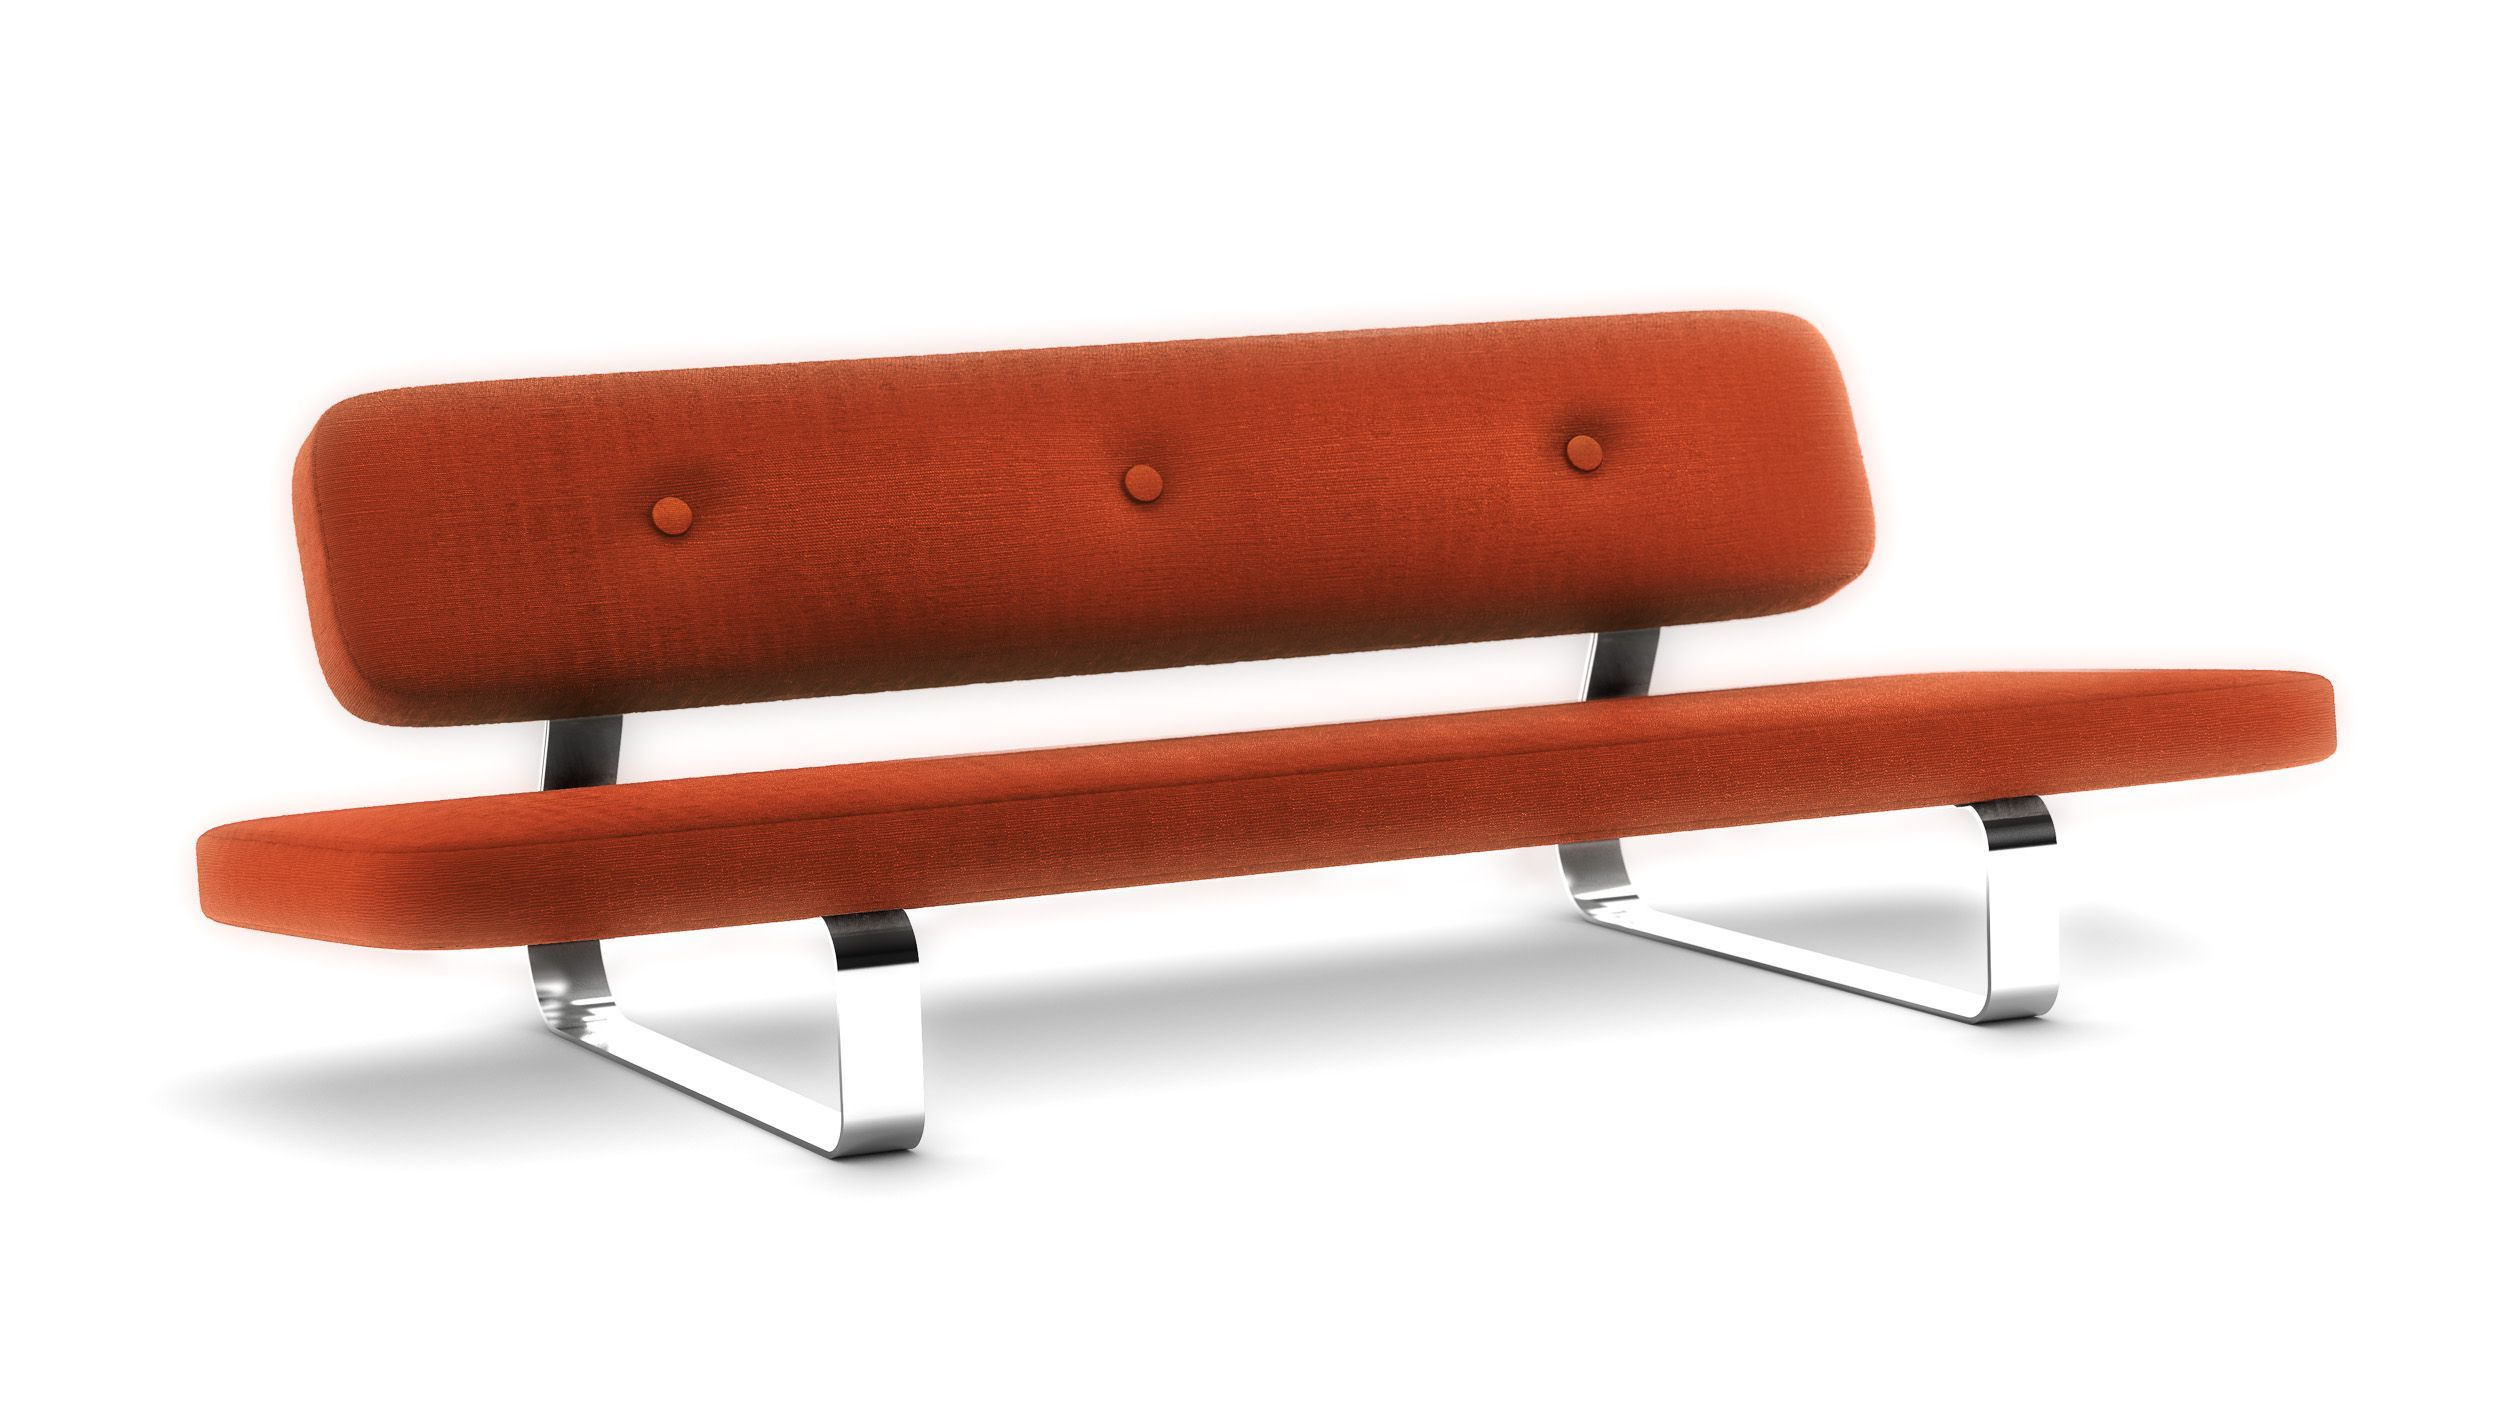 Chesterfield Sofa Power Nap by Marcel Wanders for Moooi sofa